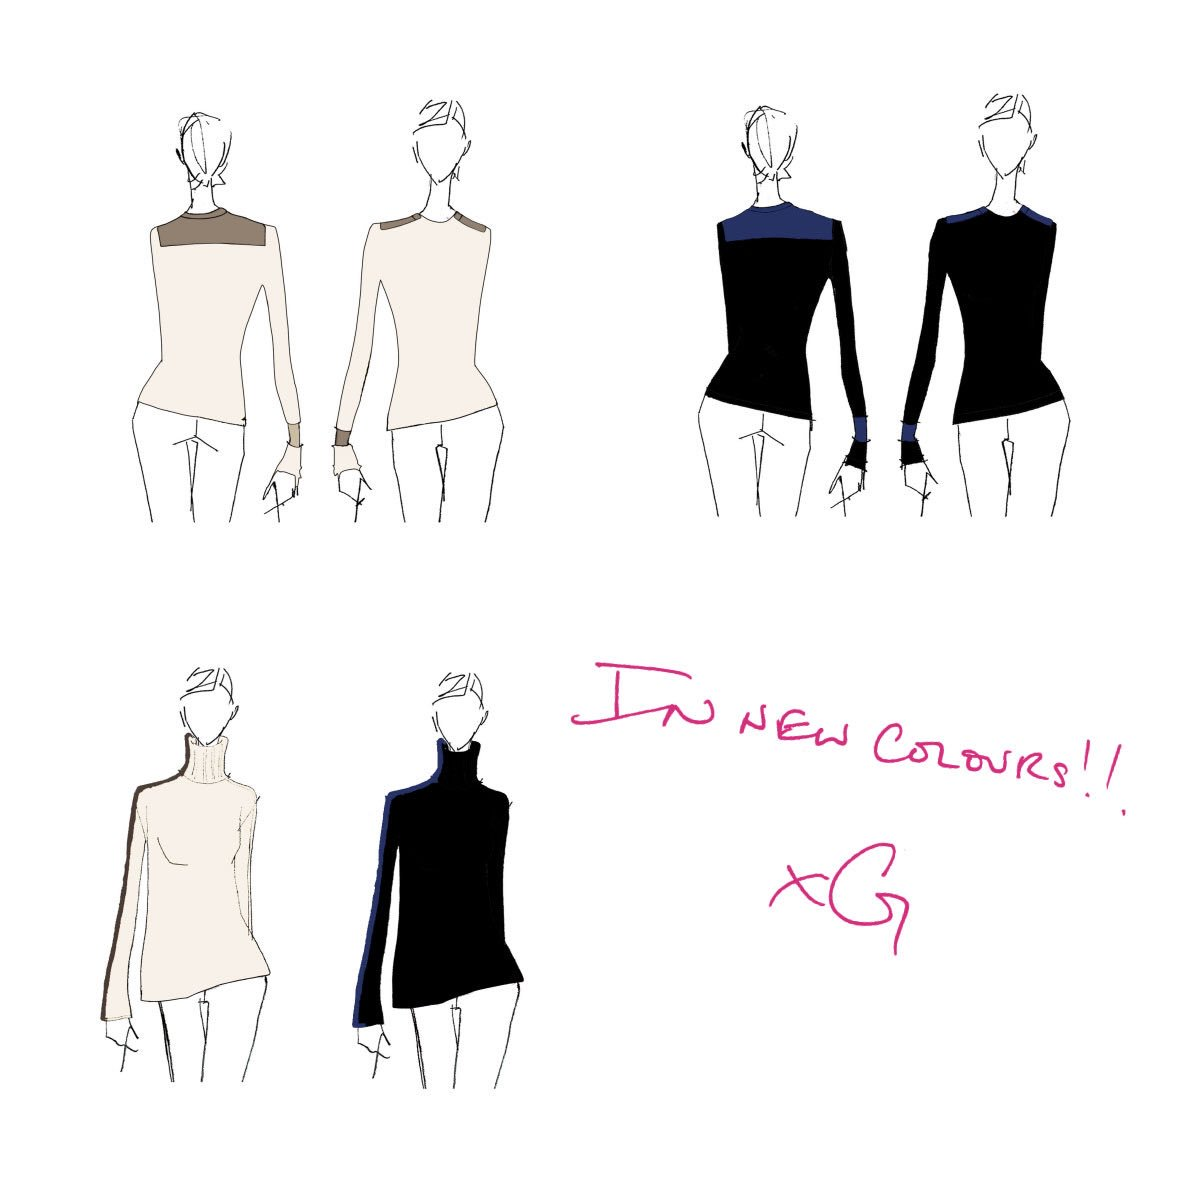 Just in time for serious sweater weather. Coming soon from #GAWinserLondon! @WinserLondon  https://t.co/ePSptC0h8d https://t.co/Fsi0h5prCk